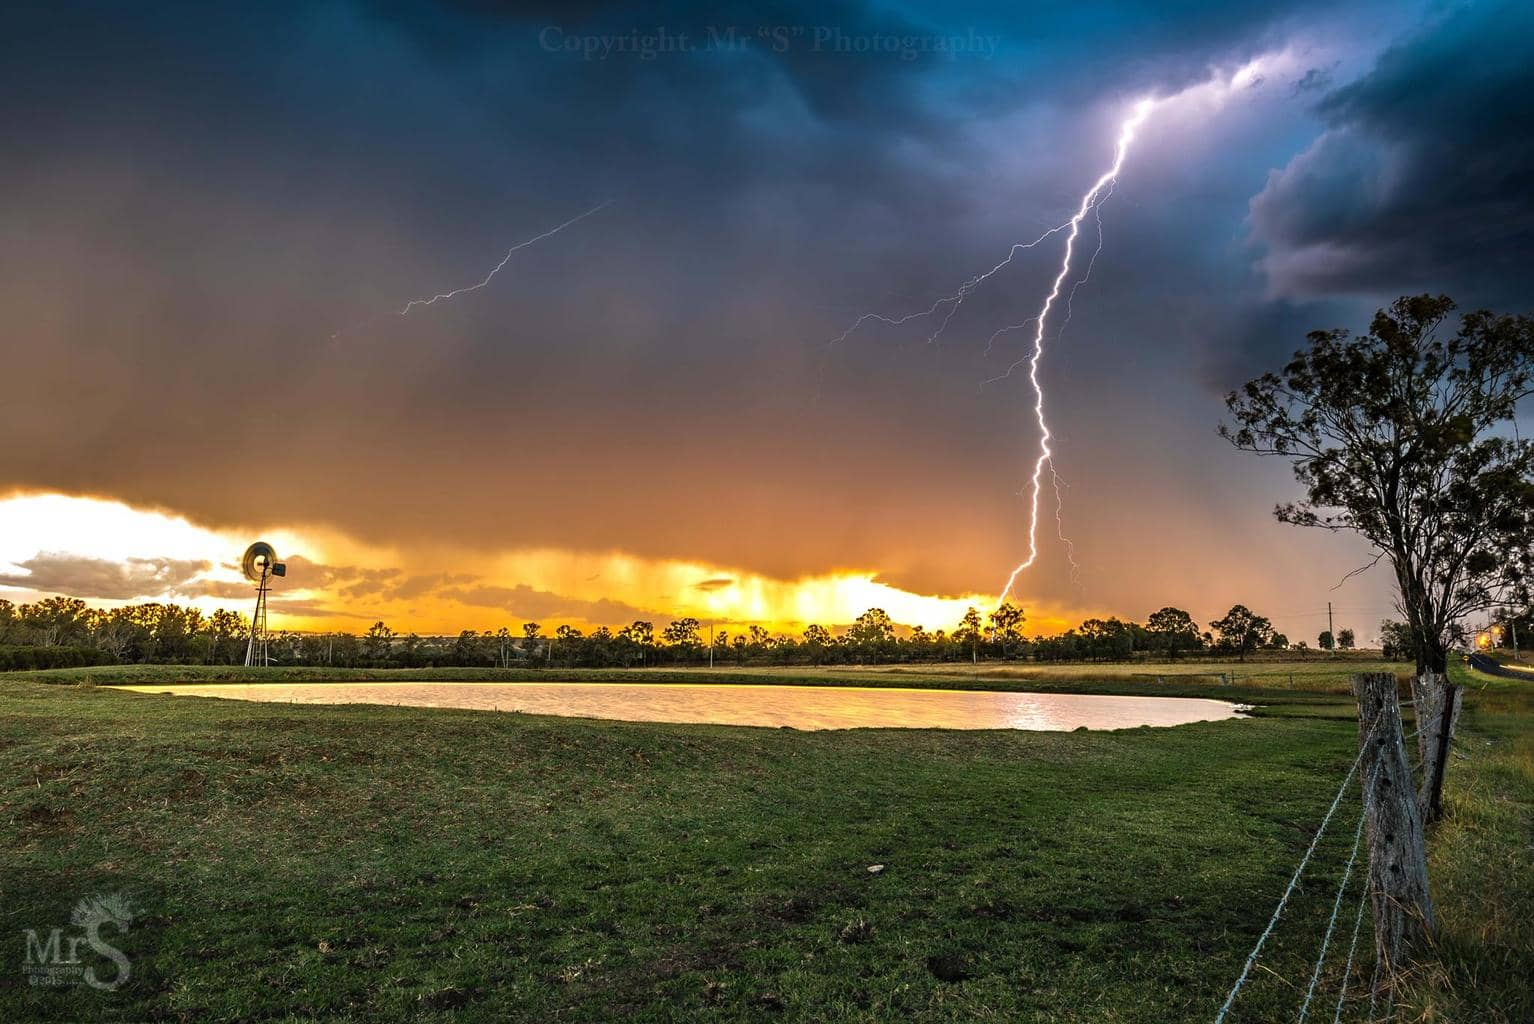 !!! The Perfect Sunset For A Storm Chaser !!! Well today was the day. At Sunset I raced to a popular spot at Willowbank Qld in Australia in the hope of my dream shot I had imagined since last season. And to my excitement it came true. The fact this is captured with a wide angle doesn't show that the bolt only struck around 800 meters away. I am so so very happy